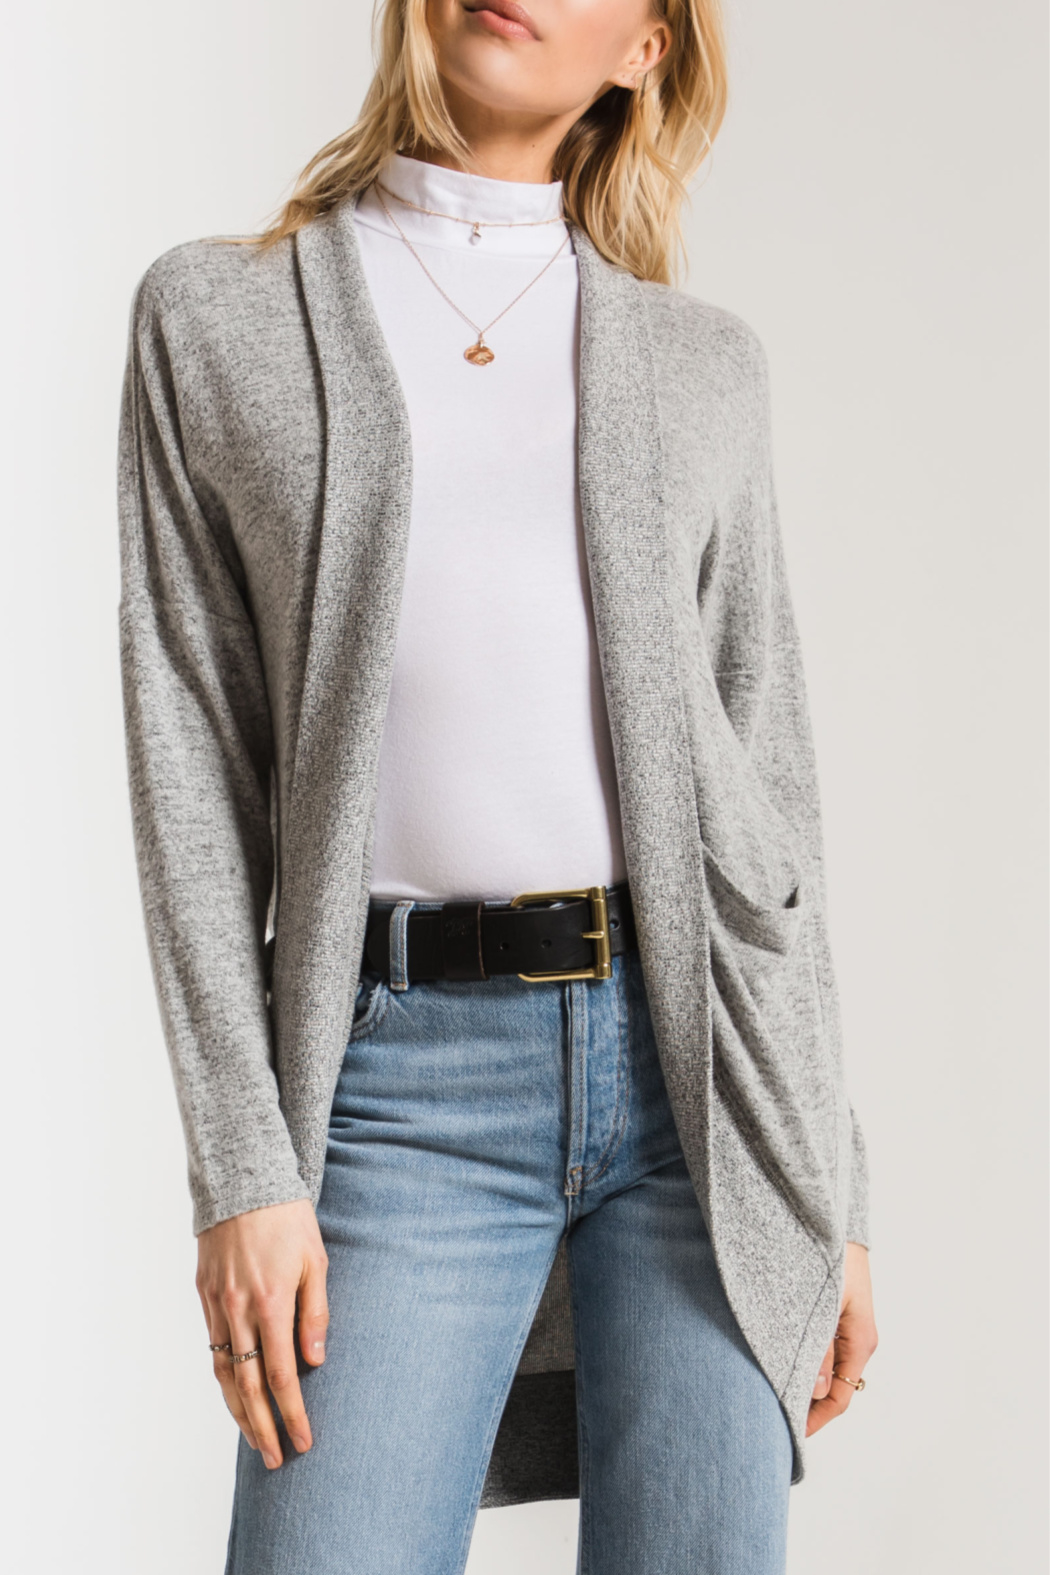 z supply Marled Knit Cocoon Sweater - Main Image